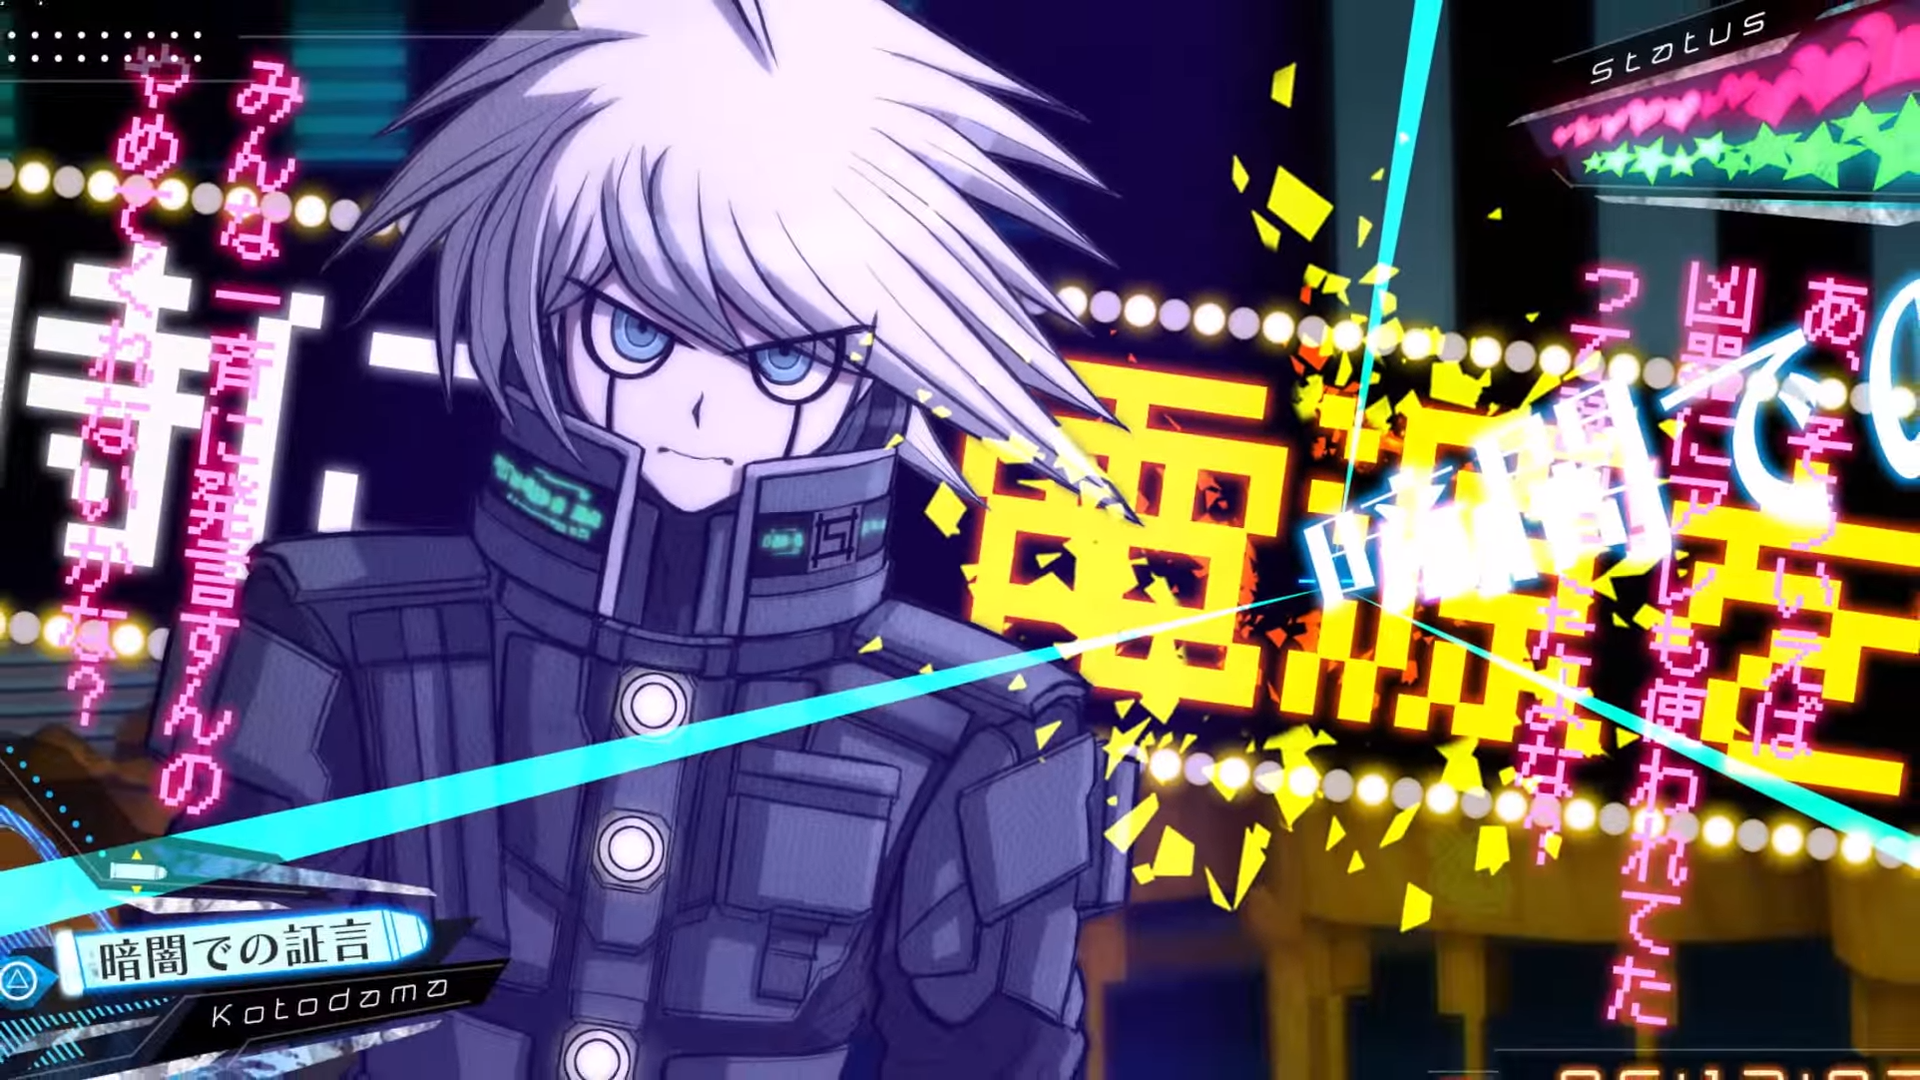 DanganRonpa V3 receives its first trailer and more | RPG Site